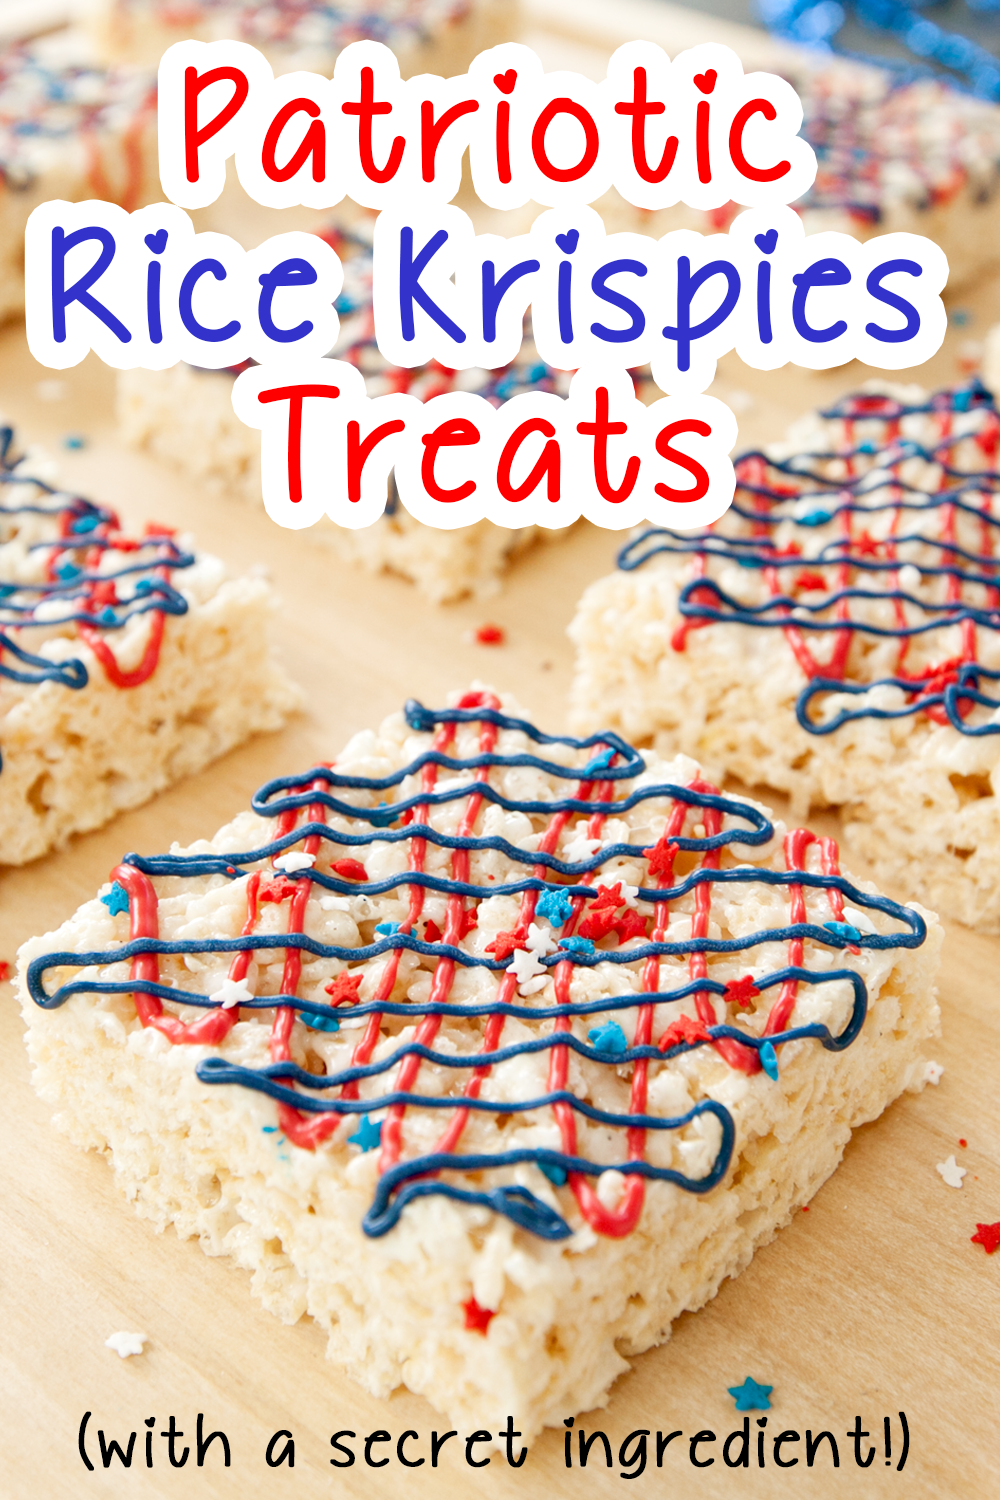 red white and blue rice krispies treats for pinterest